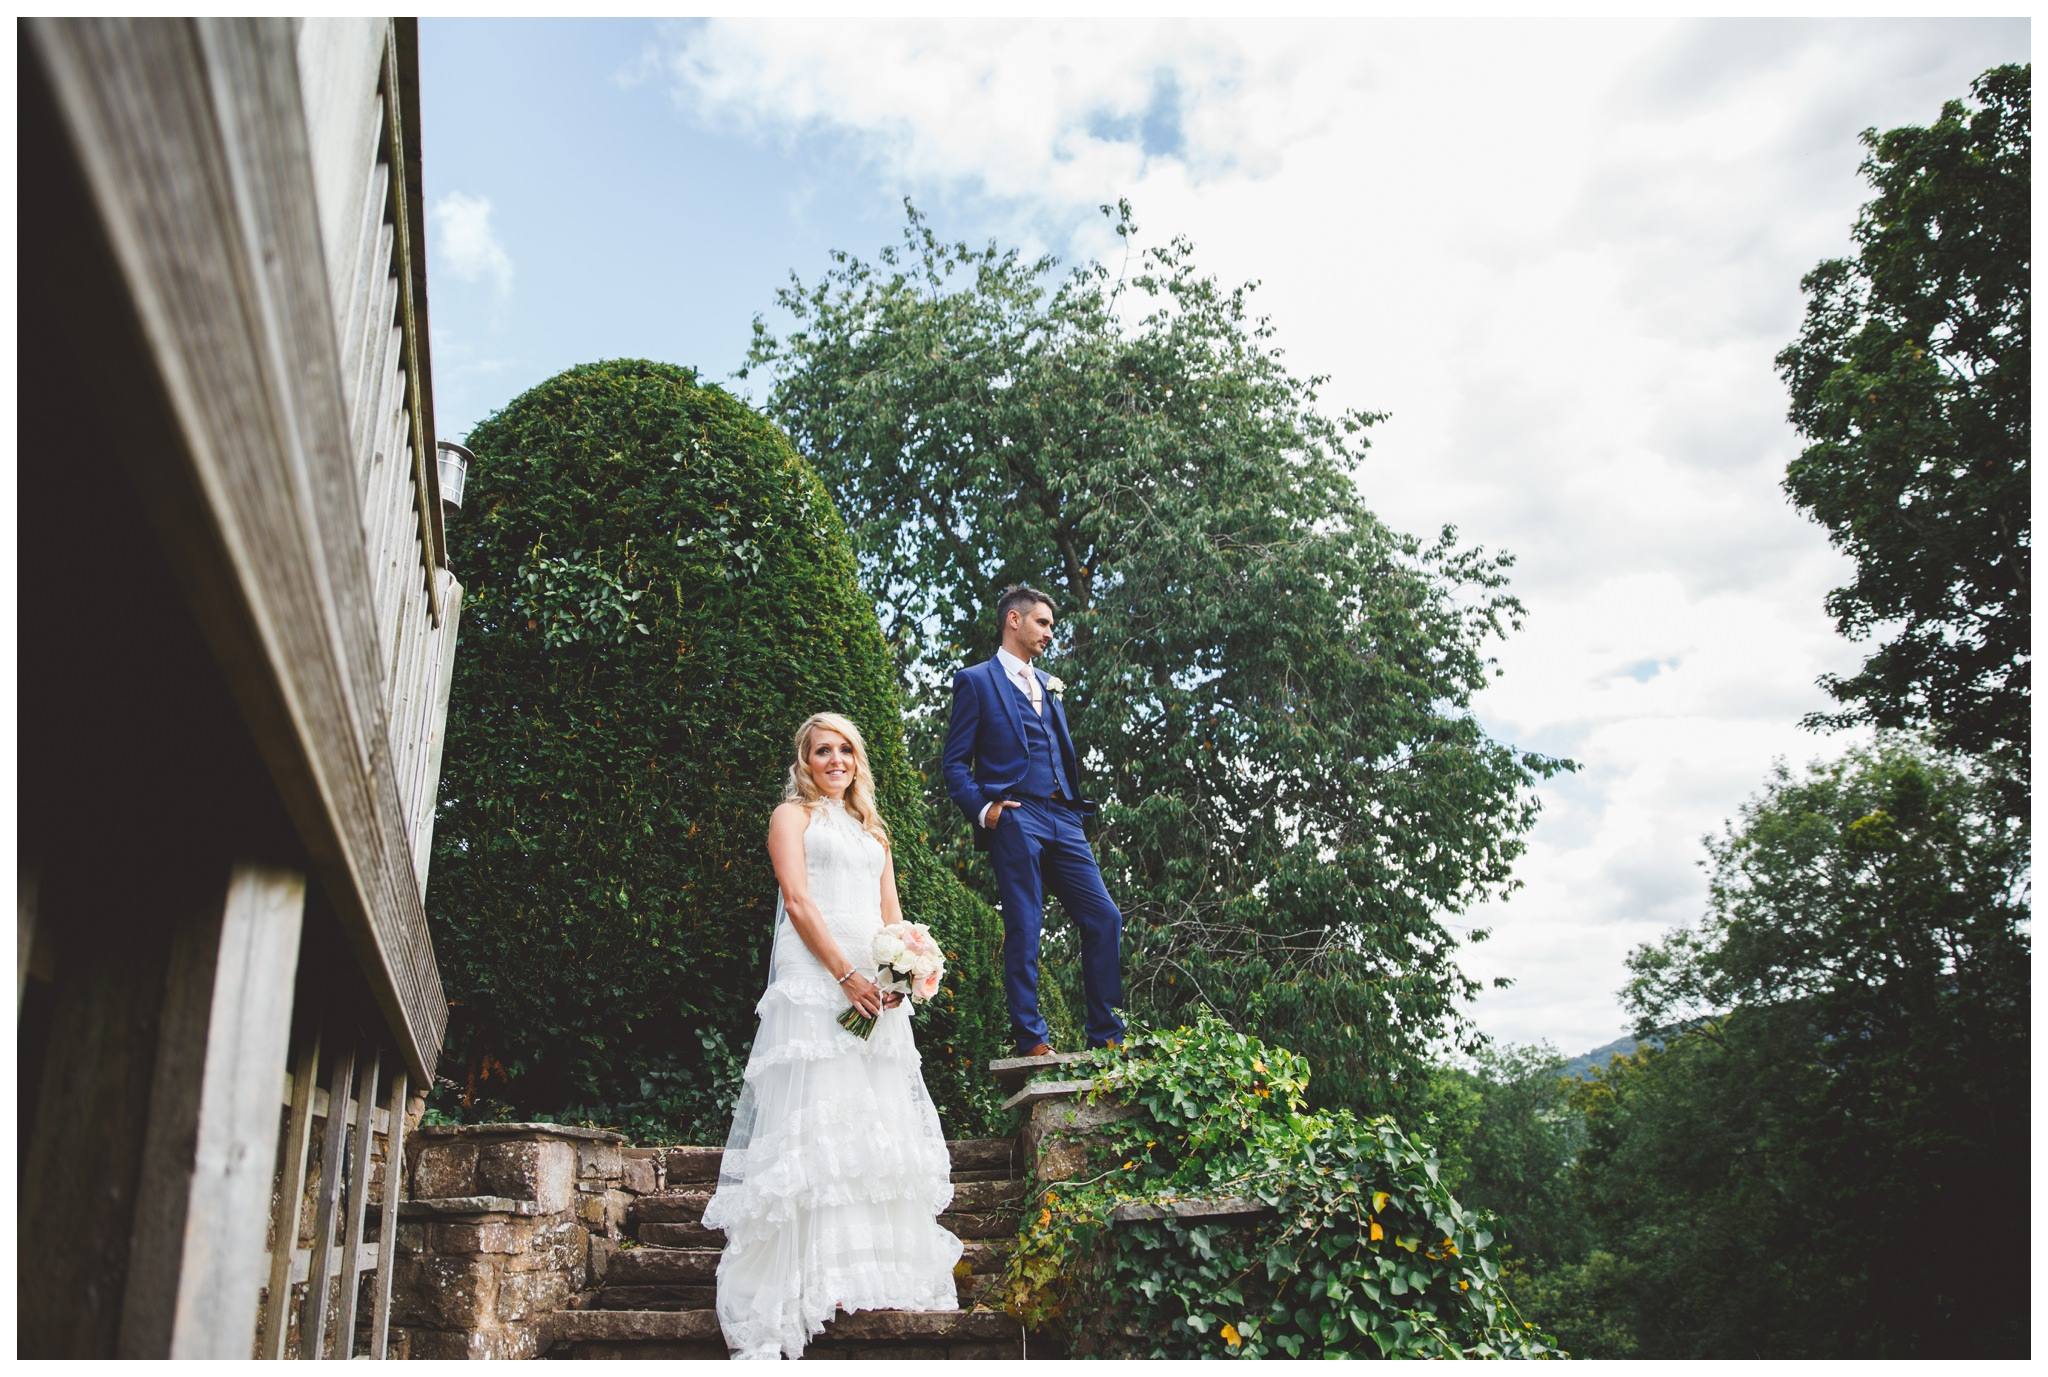 Richard Savage Photography - Wedding - Peterstone Court Brecon - 2016-05-11_0042